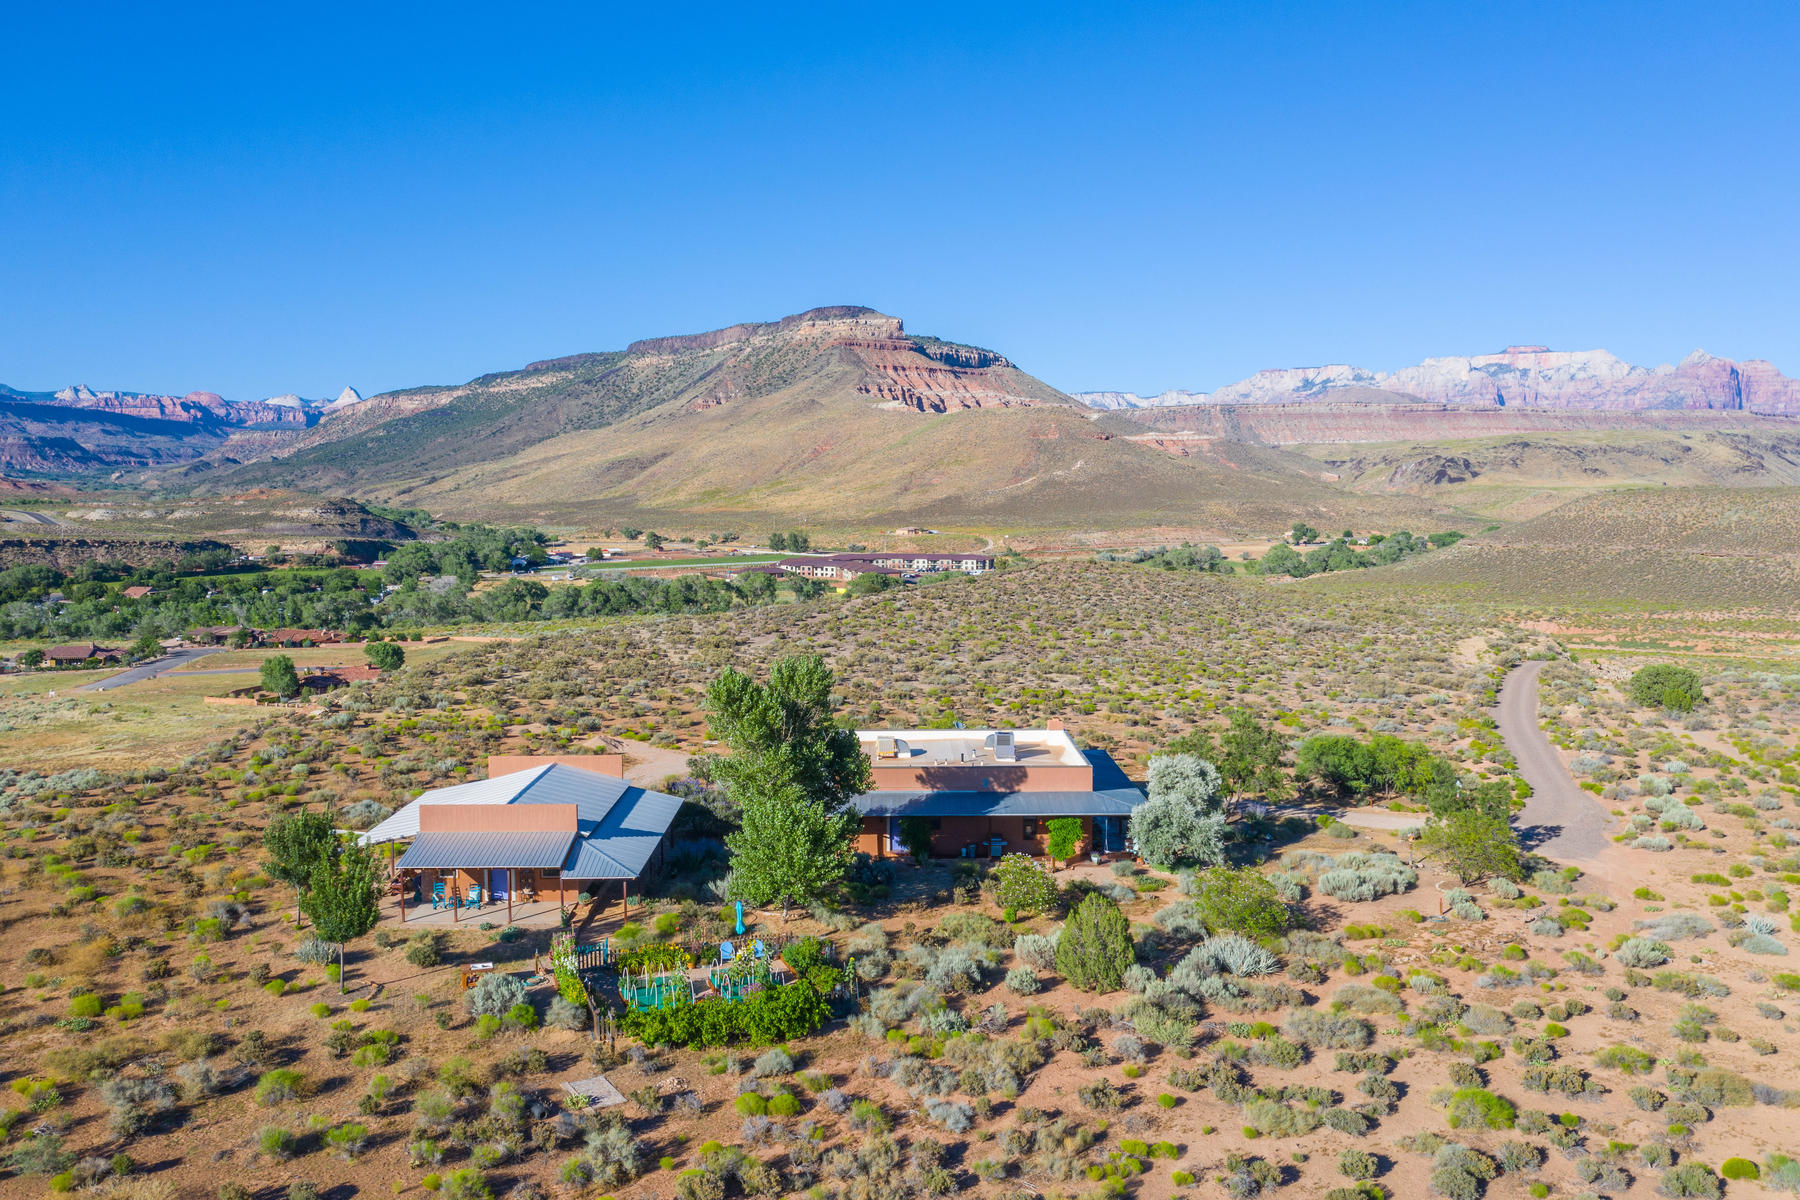 Single Family Homes for Sale at Hacienda-Style Home On Private 35 Ac Mesa 265 Red Hill Lane, Virgin, Utah 84779 United States